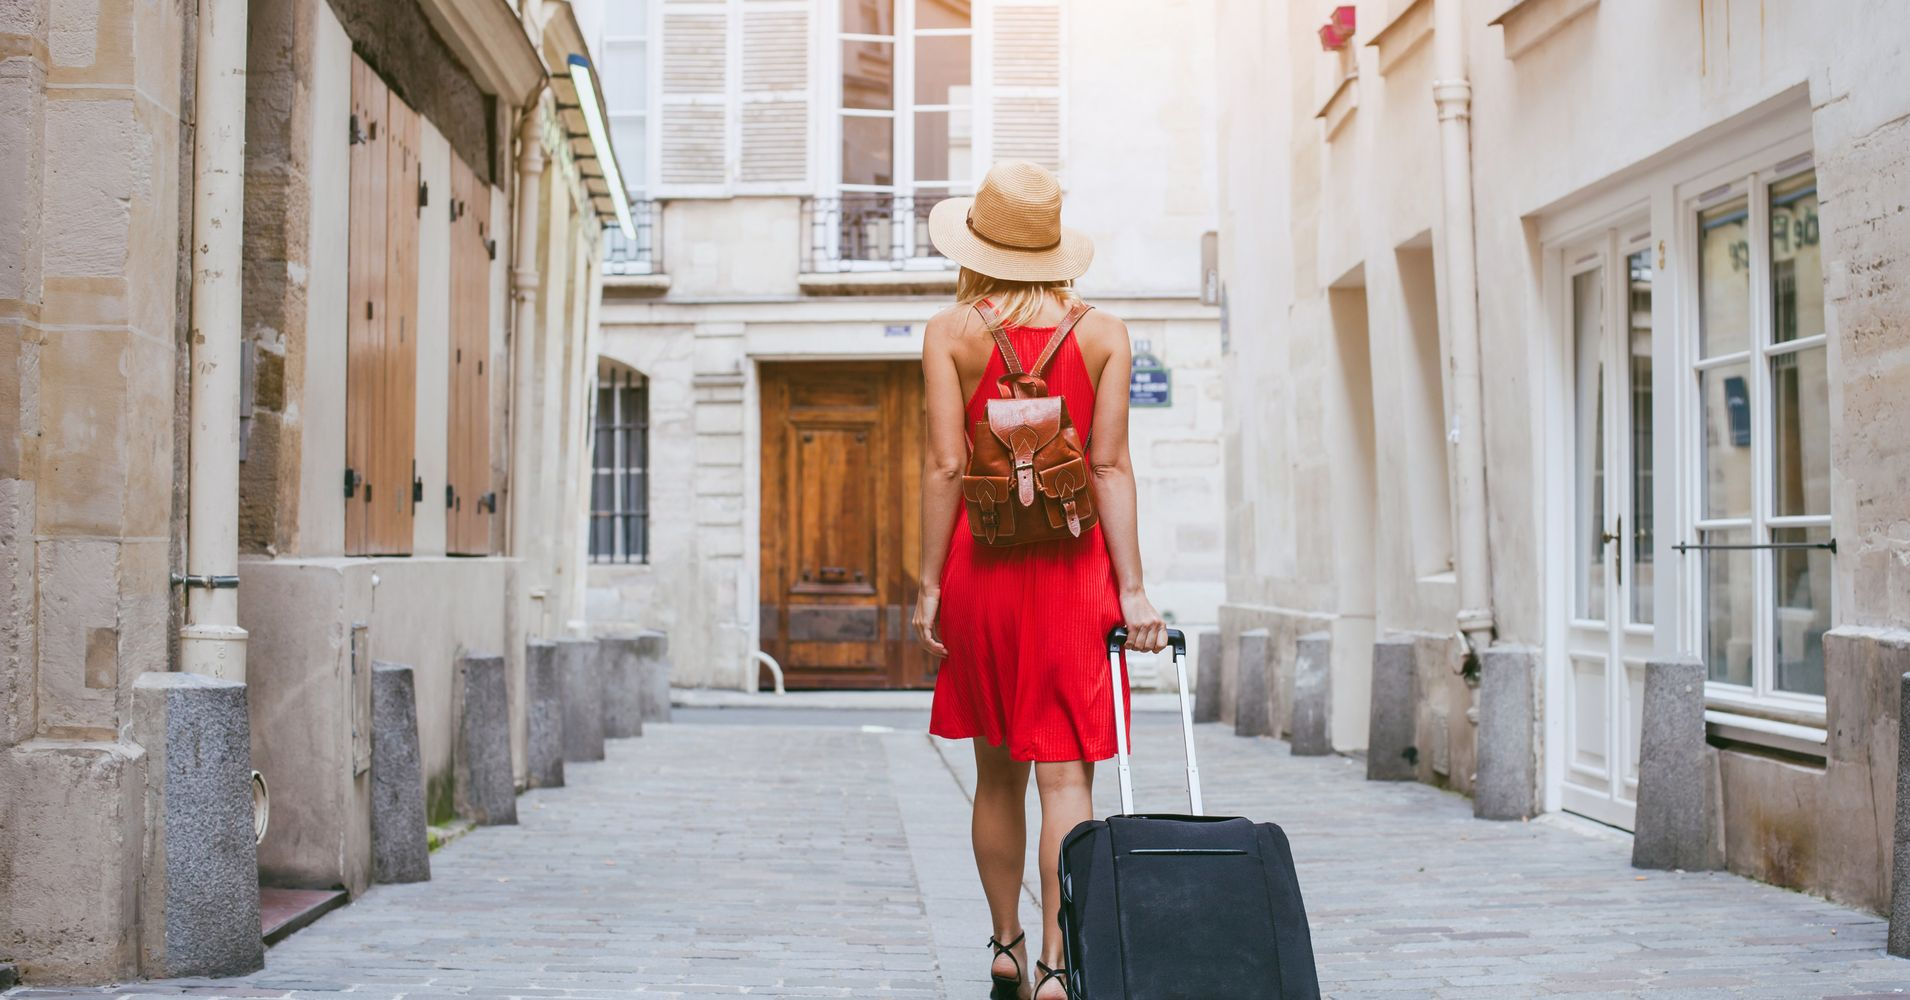 5 Foolproof Ways to Outsmart Scammers When Traveling This Summer